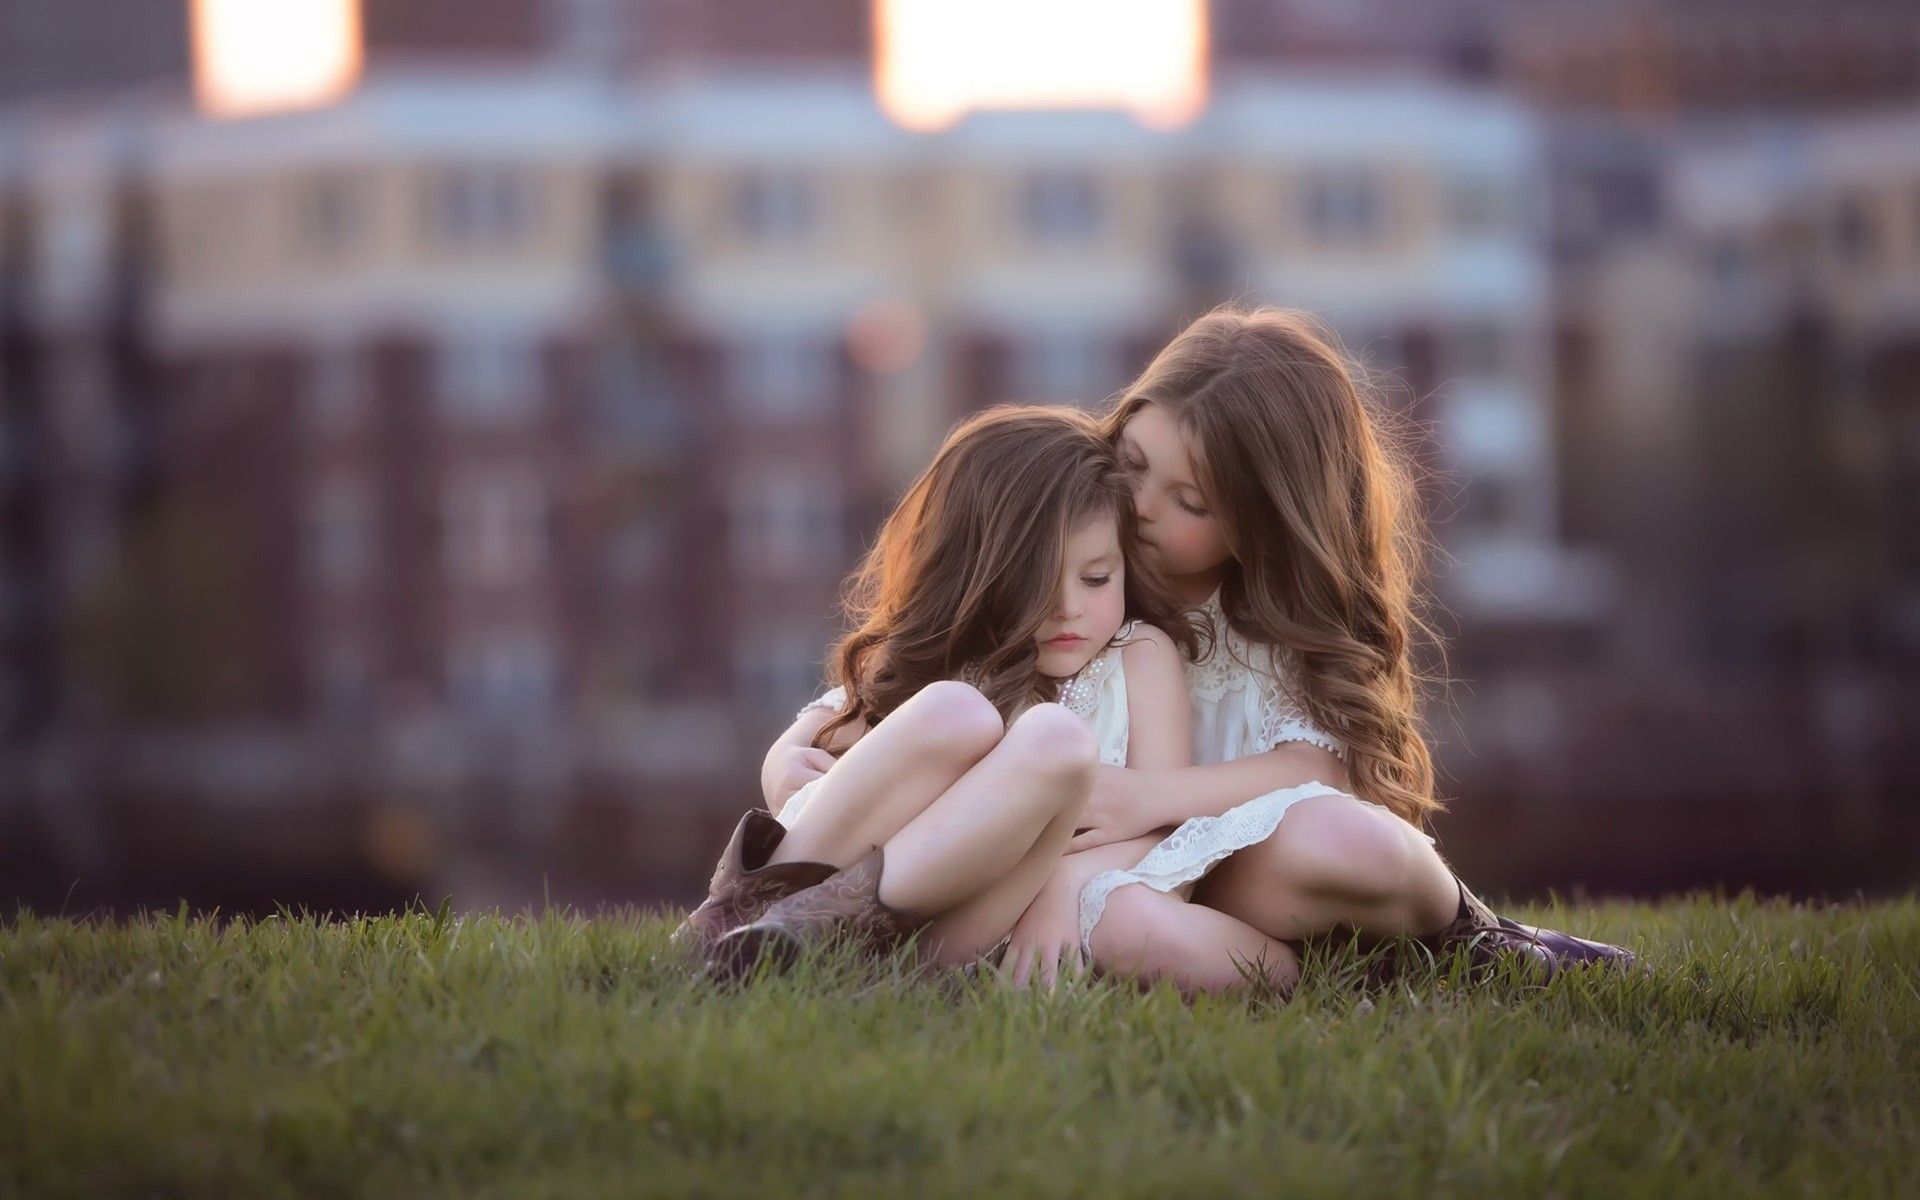 I Love My Sister Wallpapers 60 Images Sister Wallpaper Cute Girl Wallpaper Sister Pictures